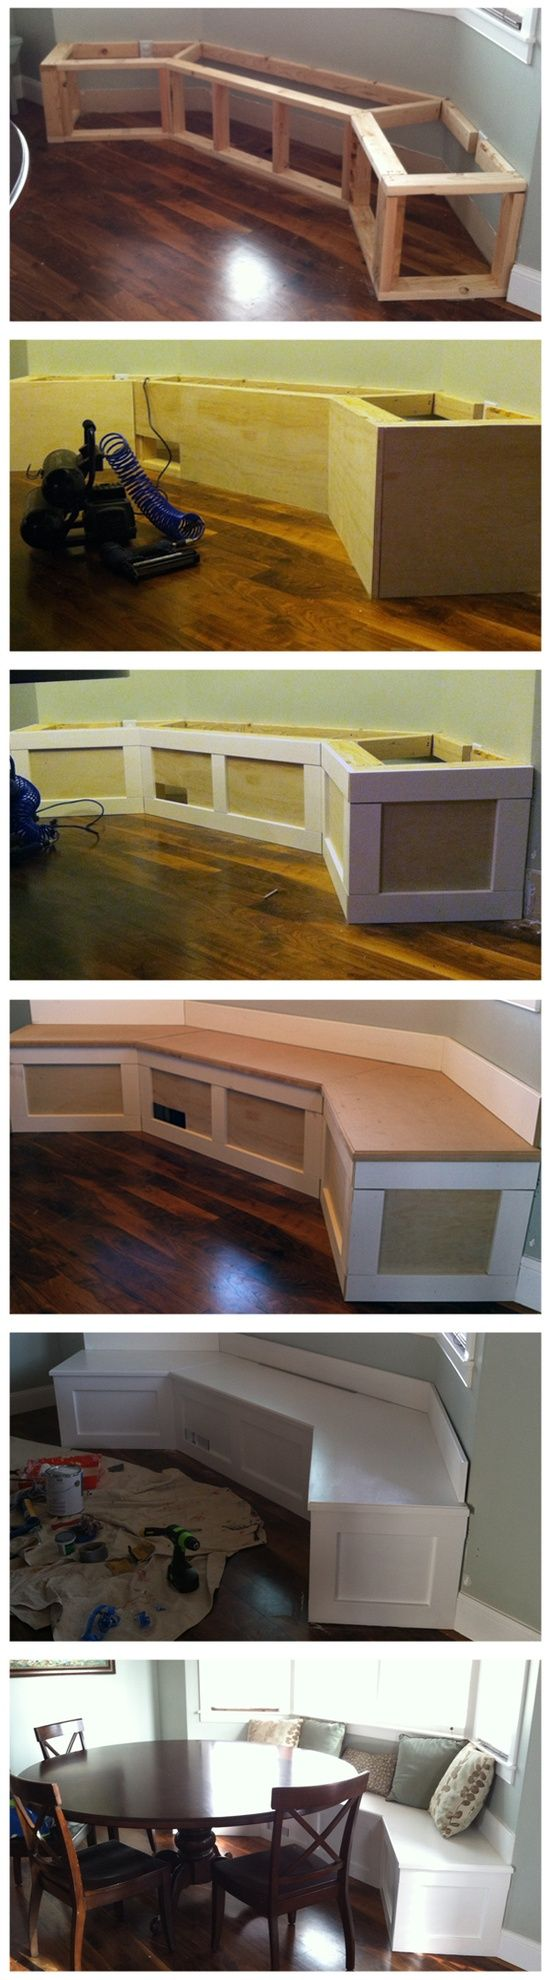 LOVE this!  Will be doing this in our kitchen dinette this summer!!